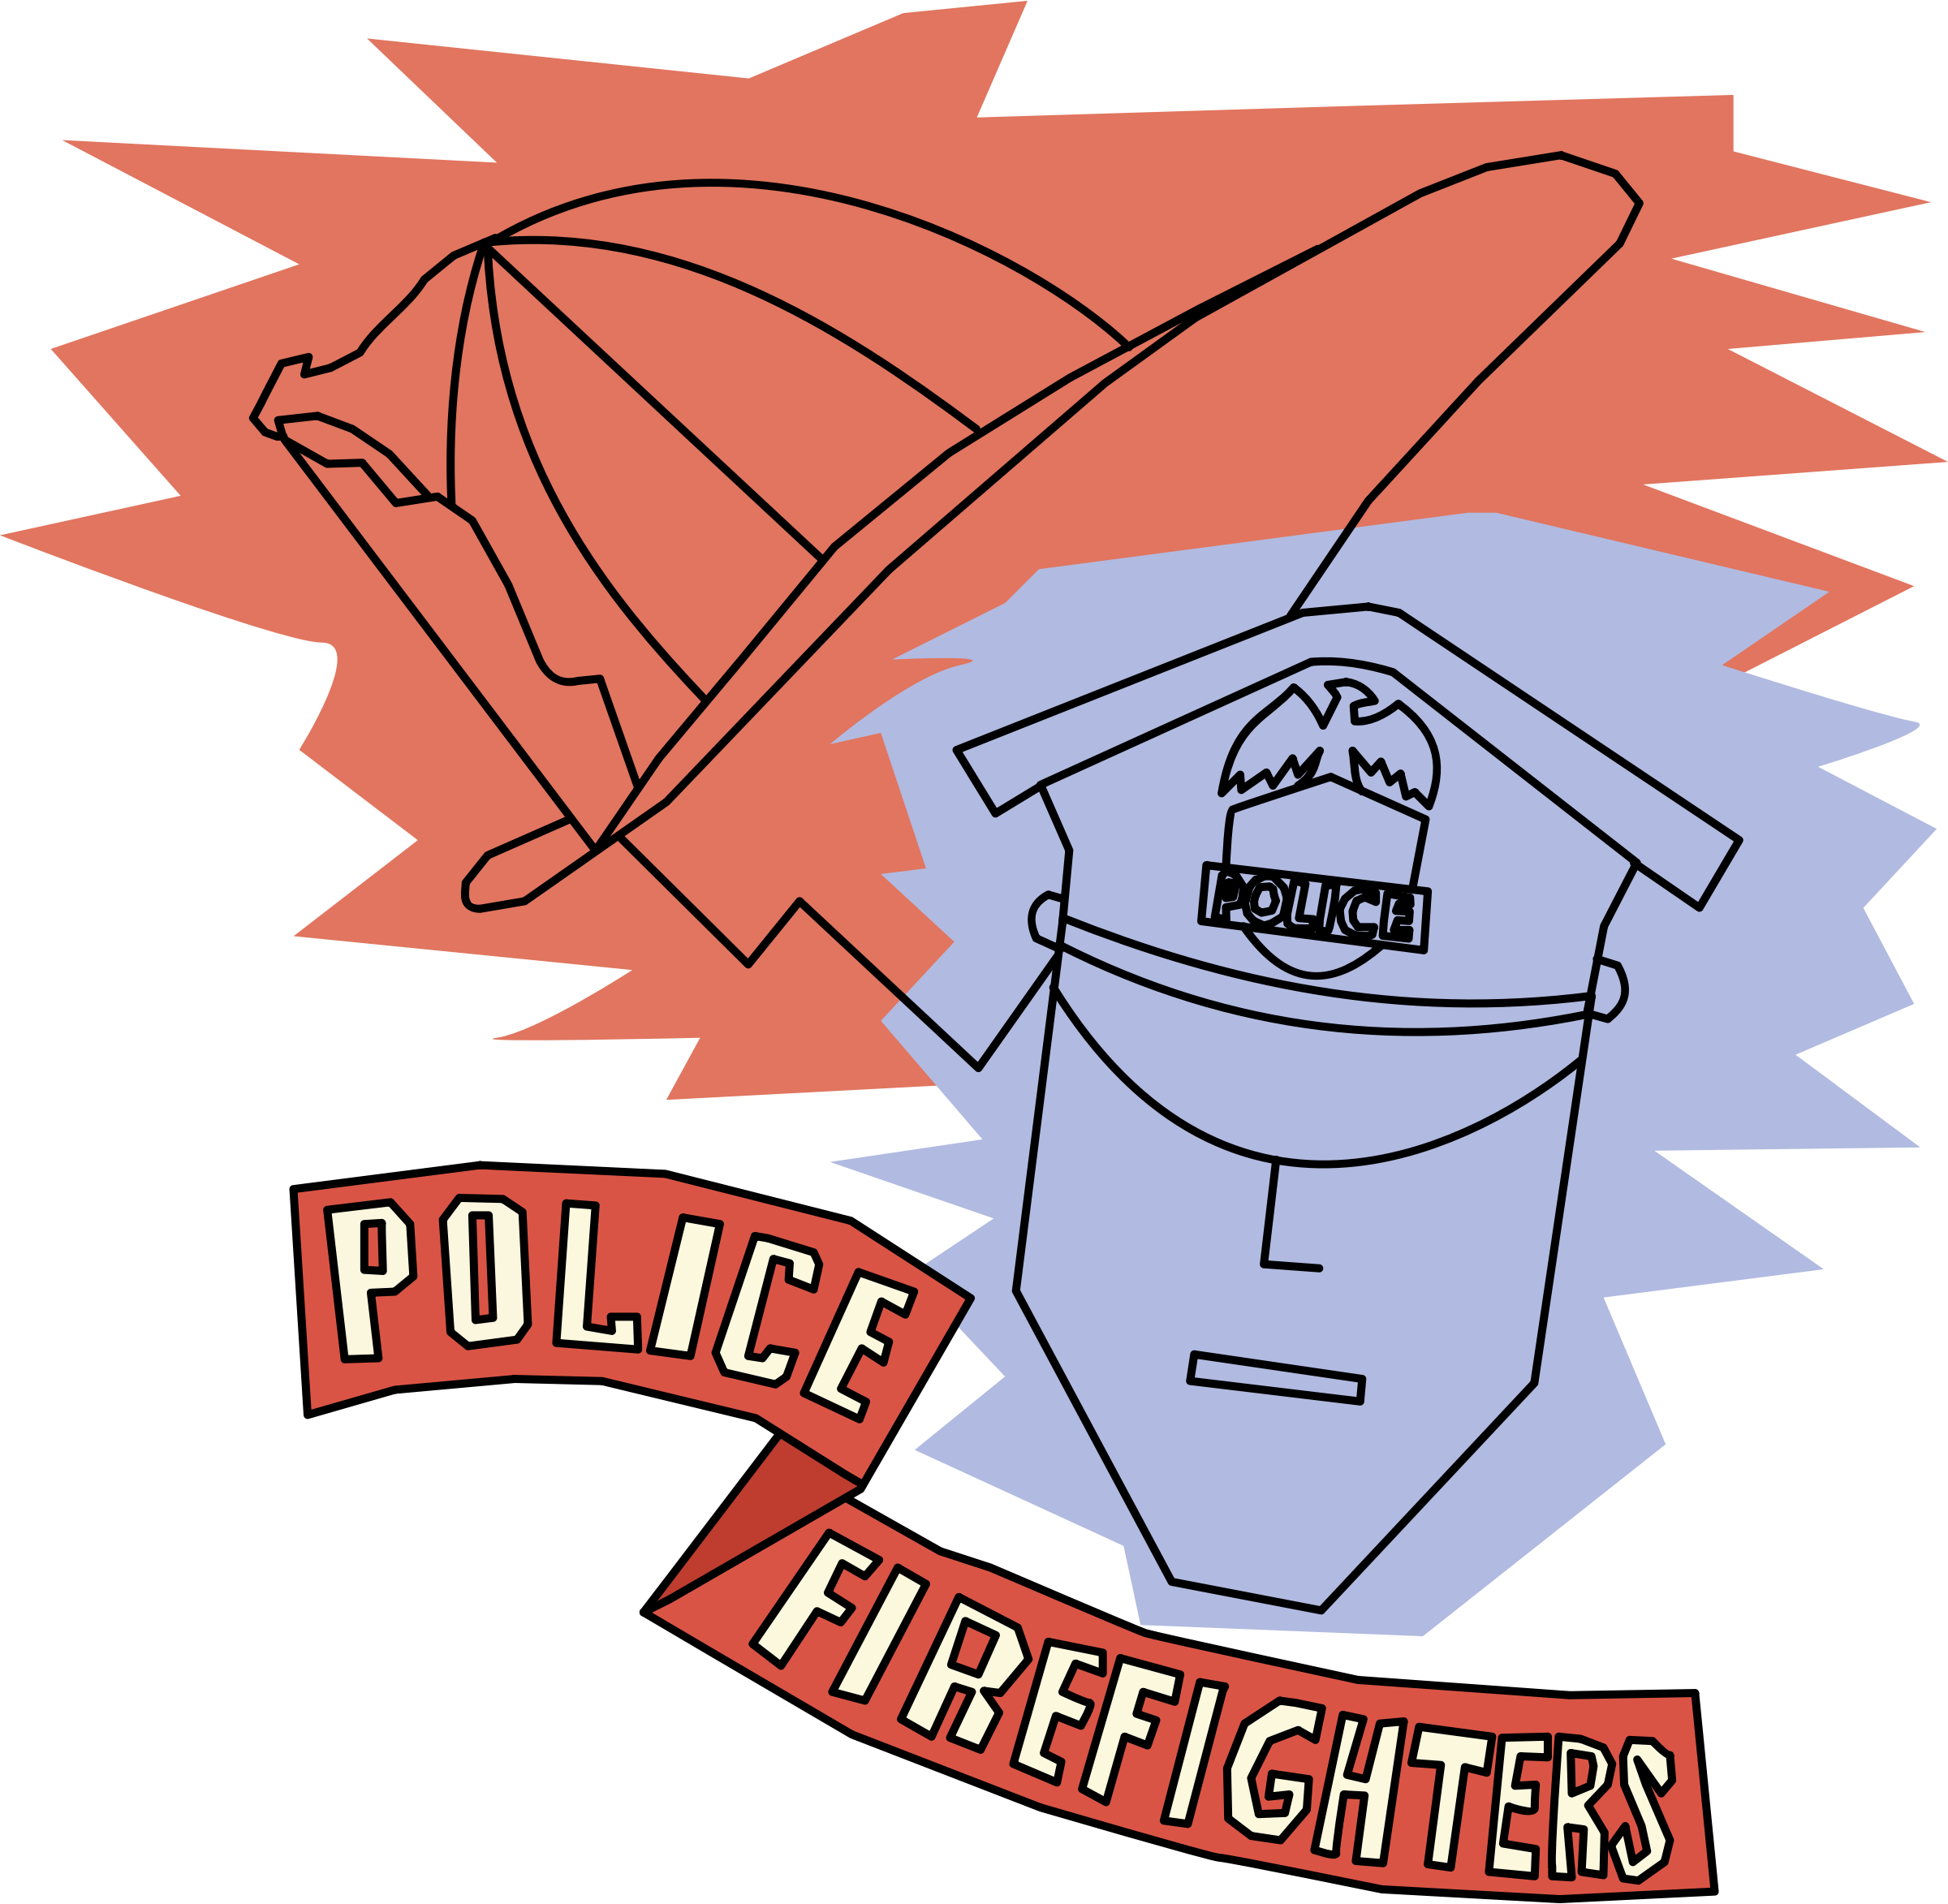 Graduation clipart poster. Police and firefighters by